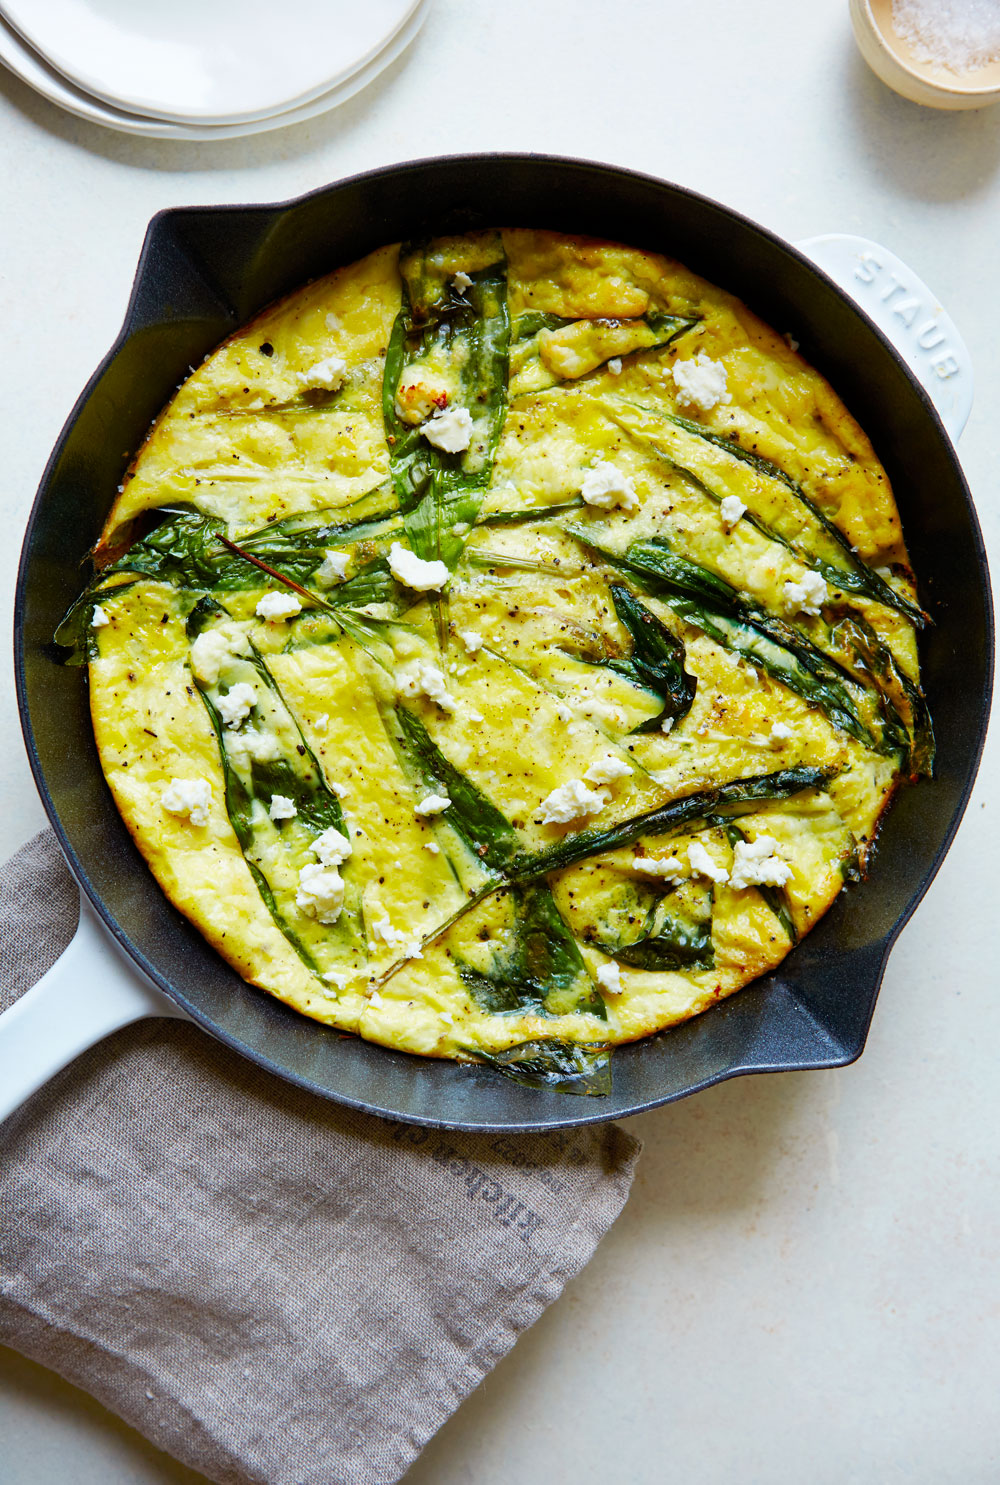 http://camillestyles.com/food-and-drink/morning-meals/spring-onion-feta-frittata/